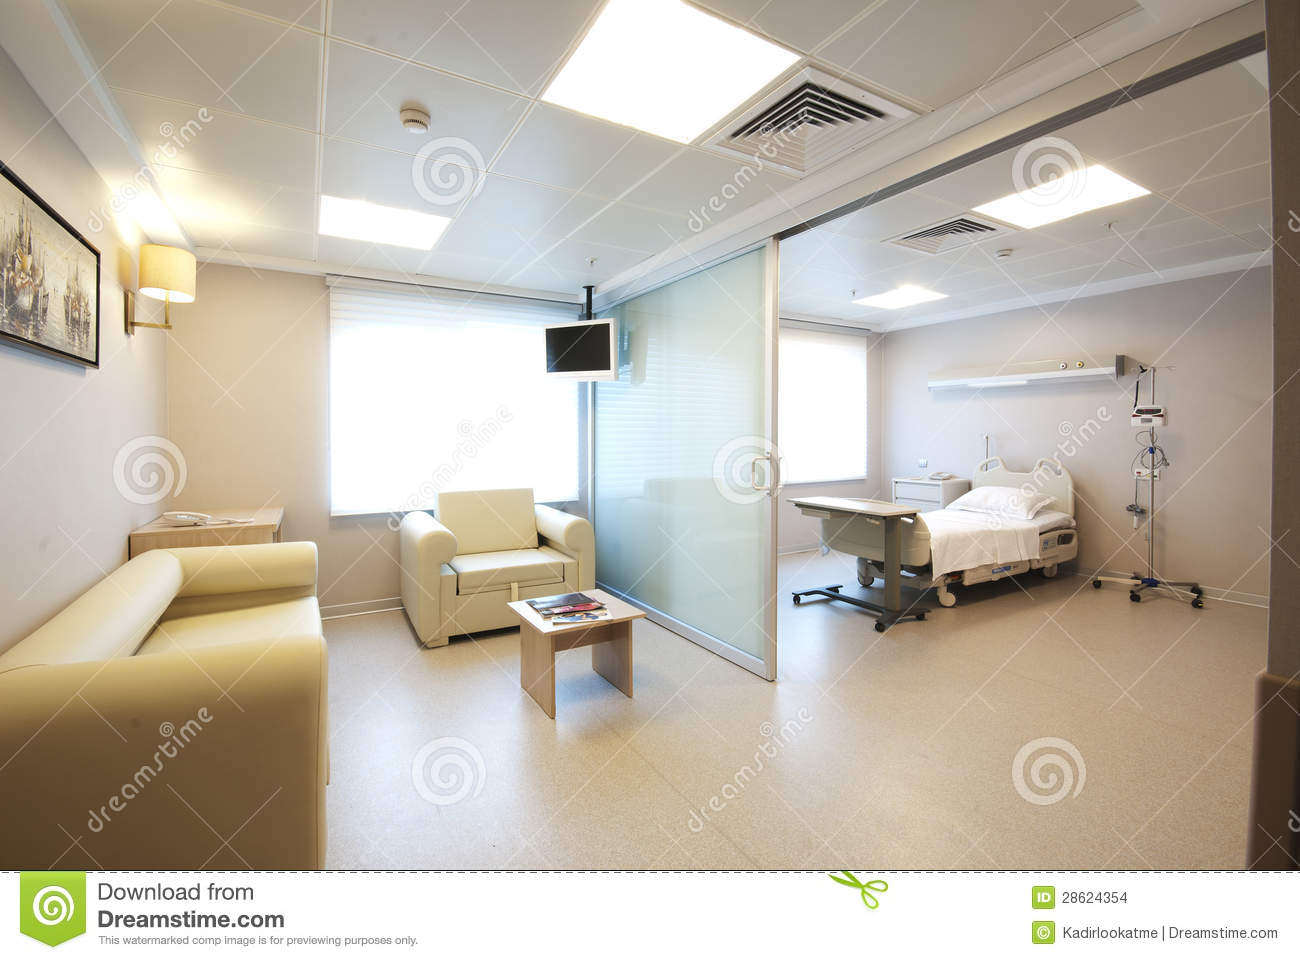 Int 233 Rieur Priv 233 De Chambre De H 244 Pital Photo Stock Image